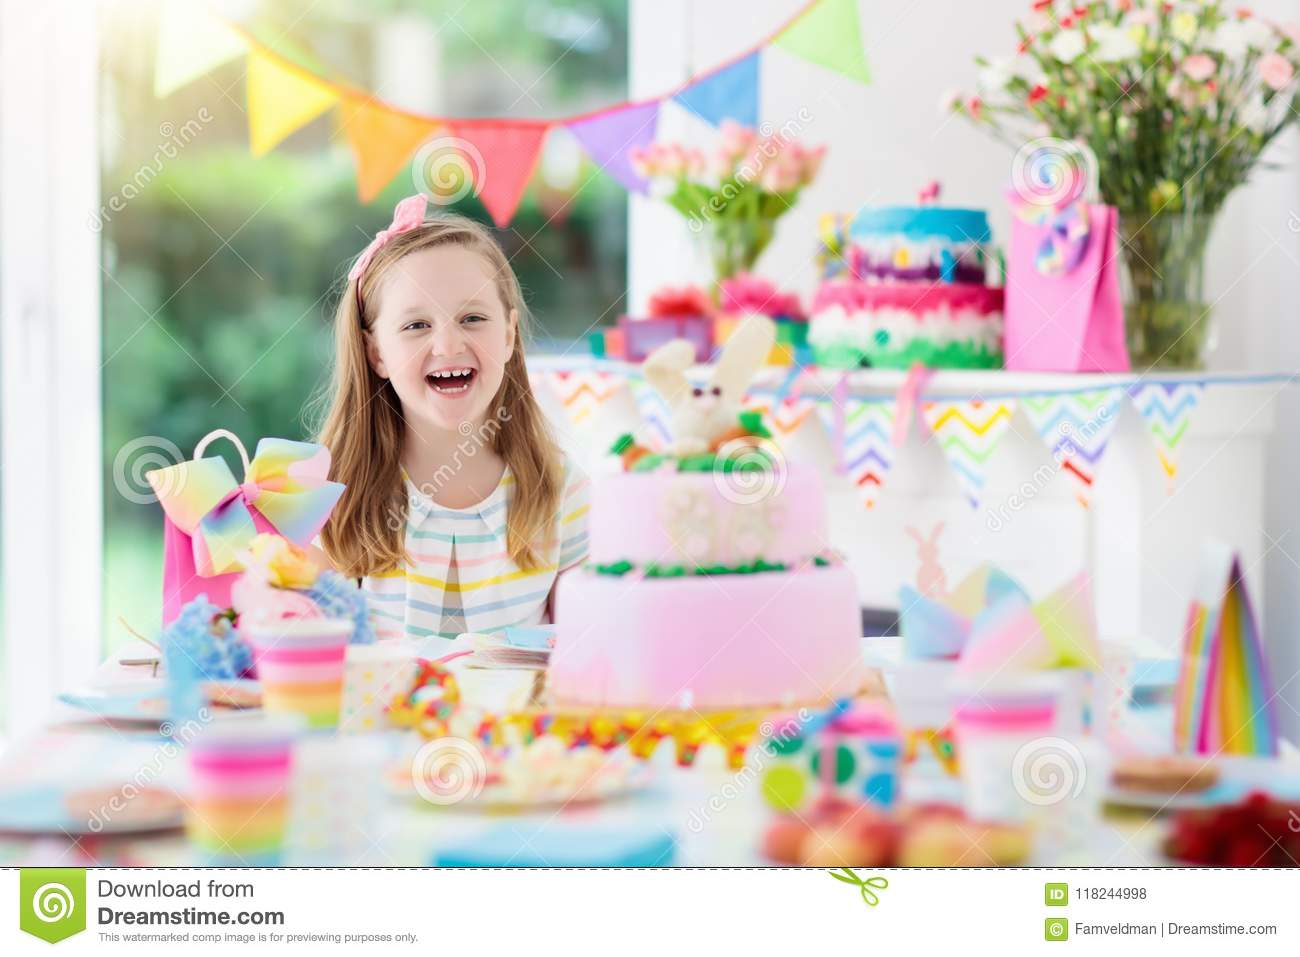 Wondrous Kids Birthday Party Child With Cake And Presents Stock Photo Funny Birthday Cards Online Sheoxdamsfinfo